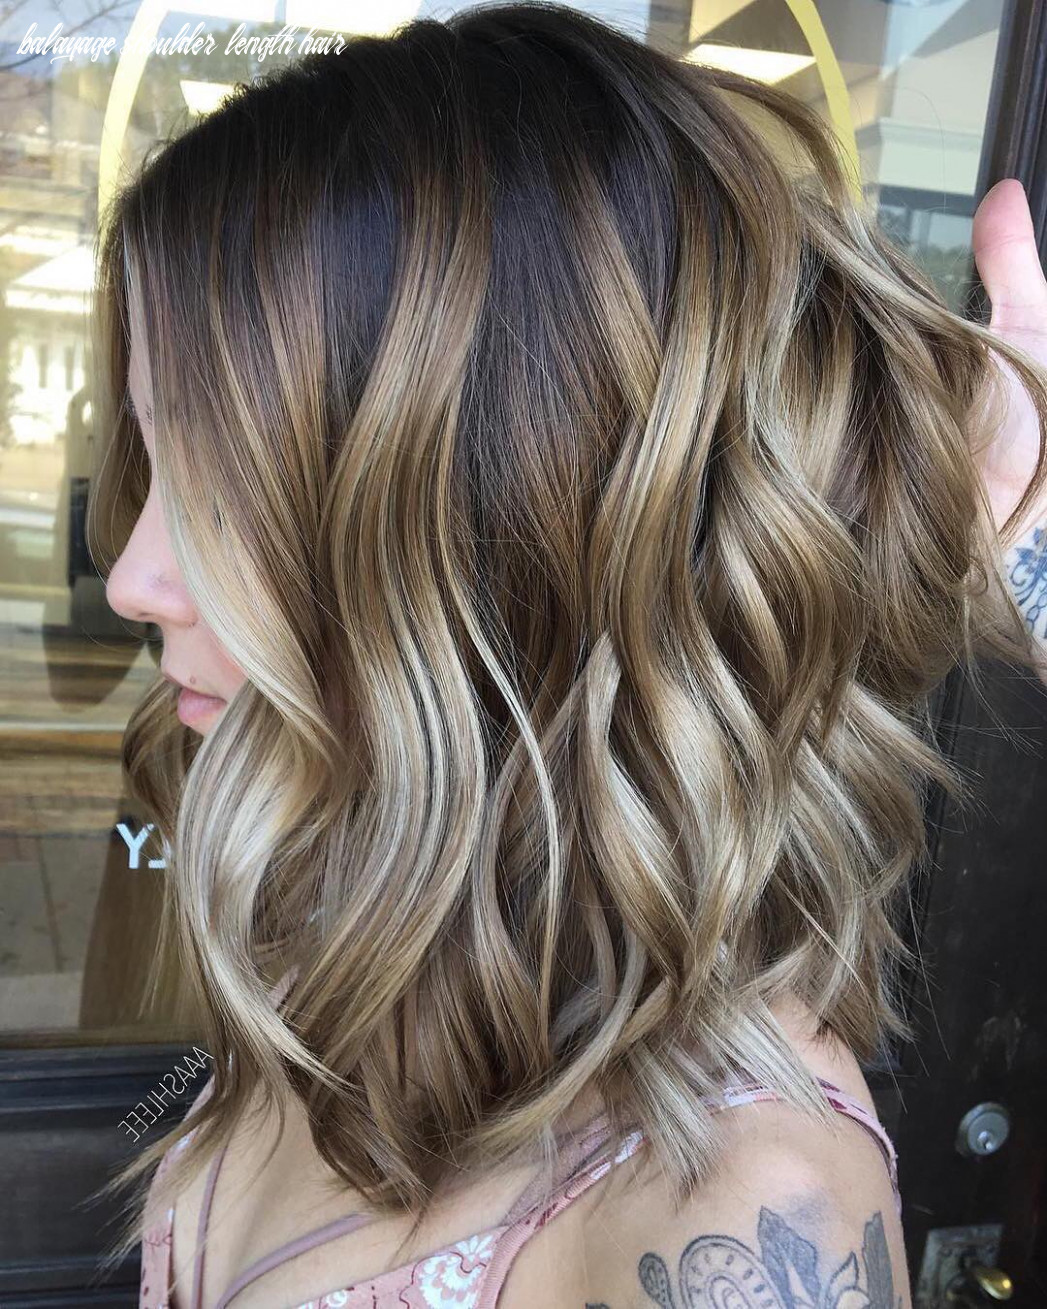 10 ombre balayage hairstyles for medium length hair, hair color 10 balayage shoulder length hair